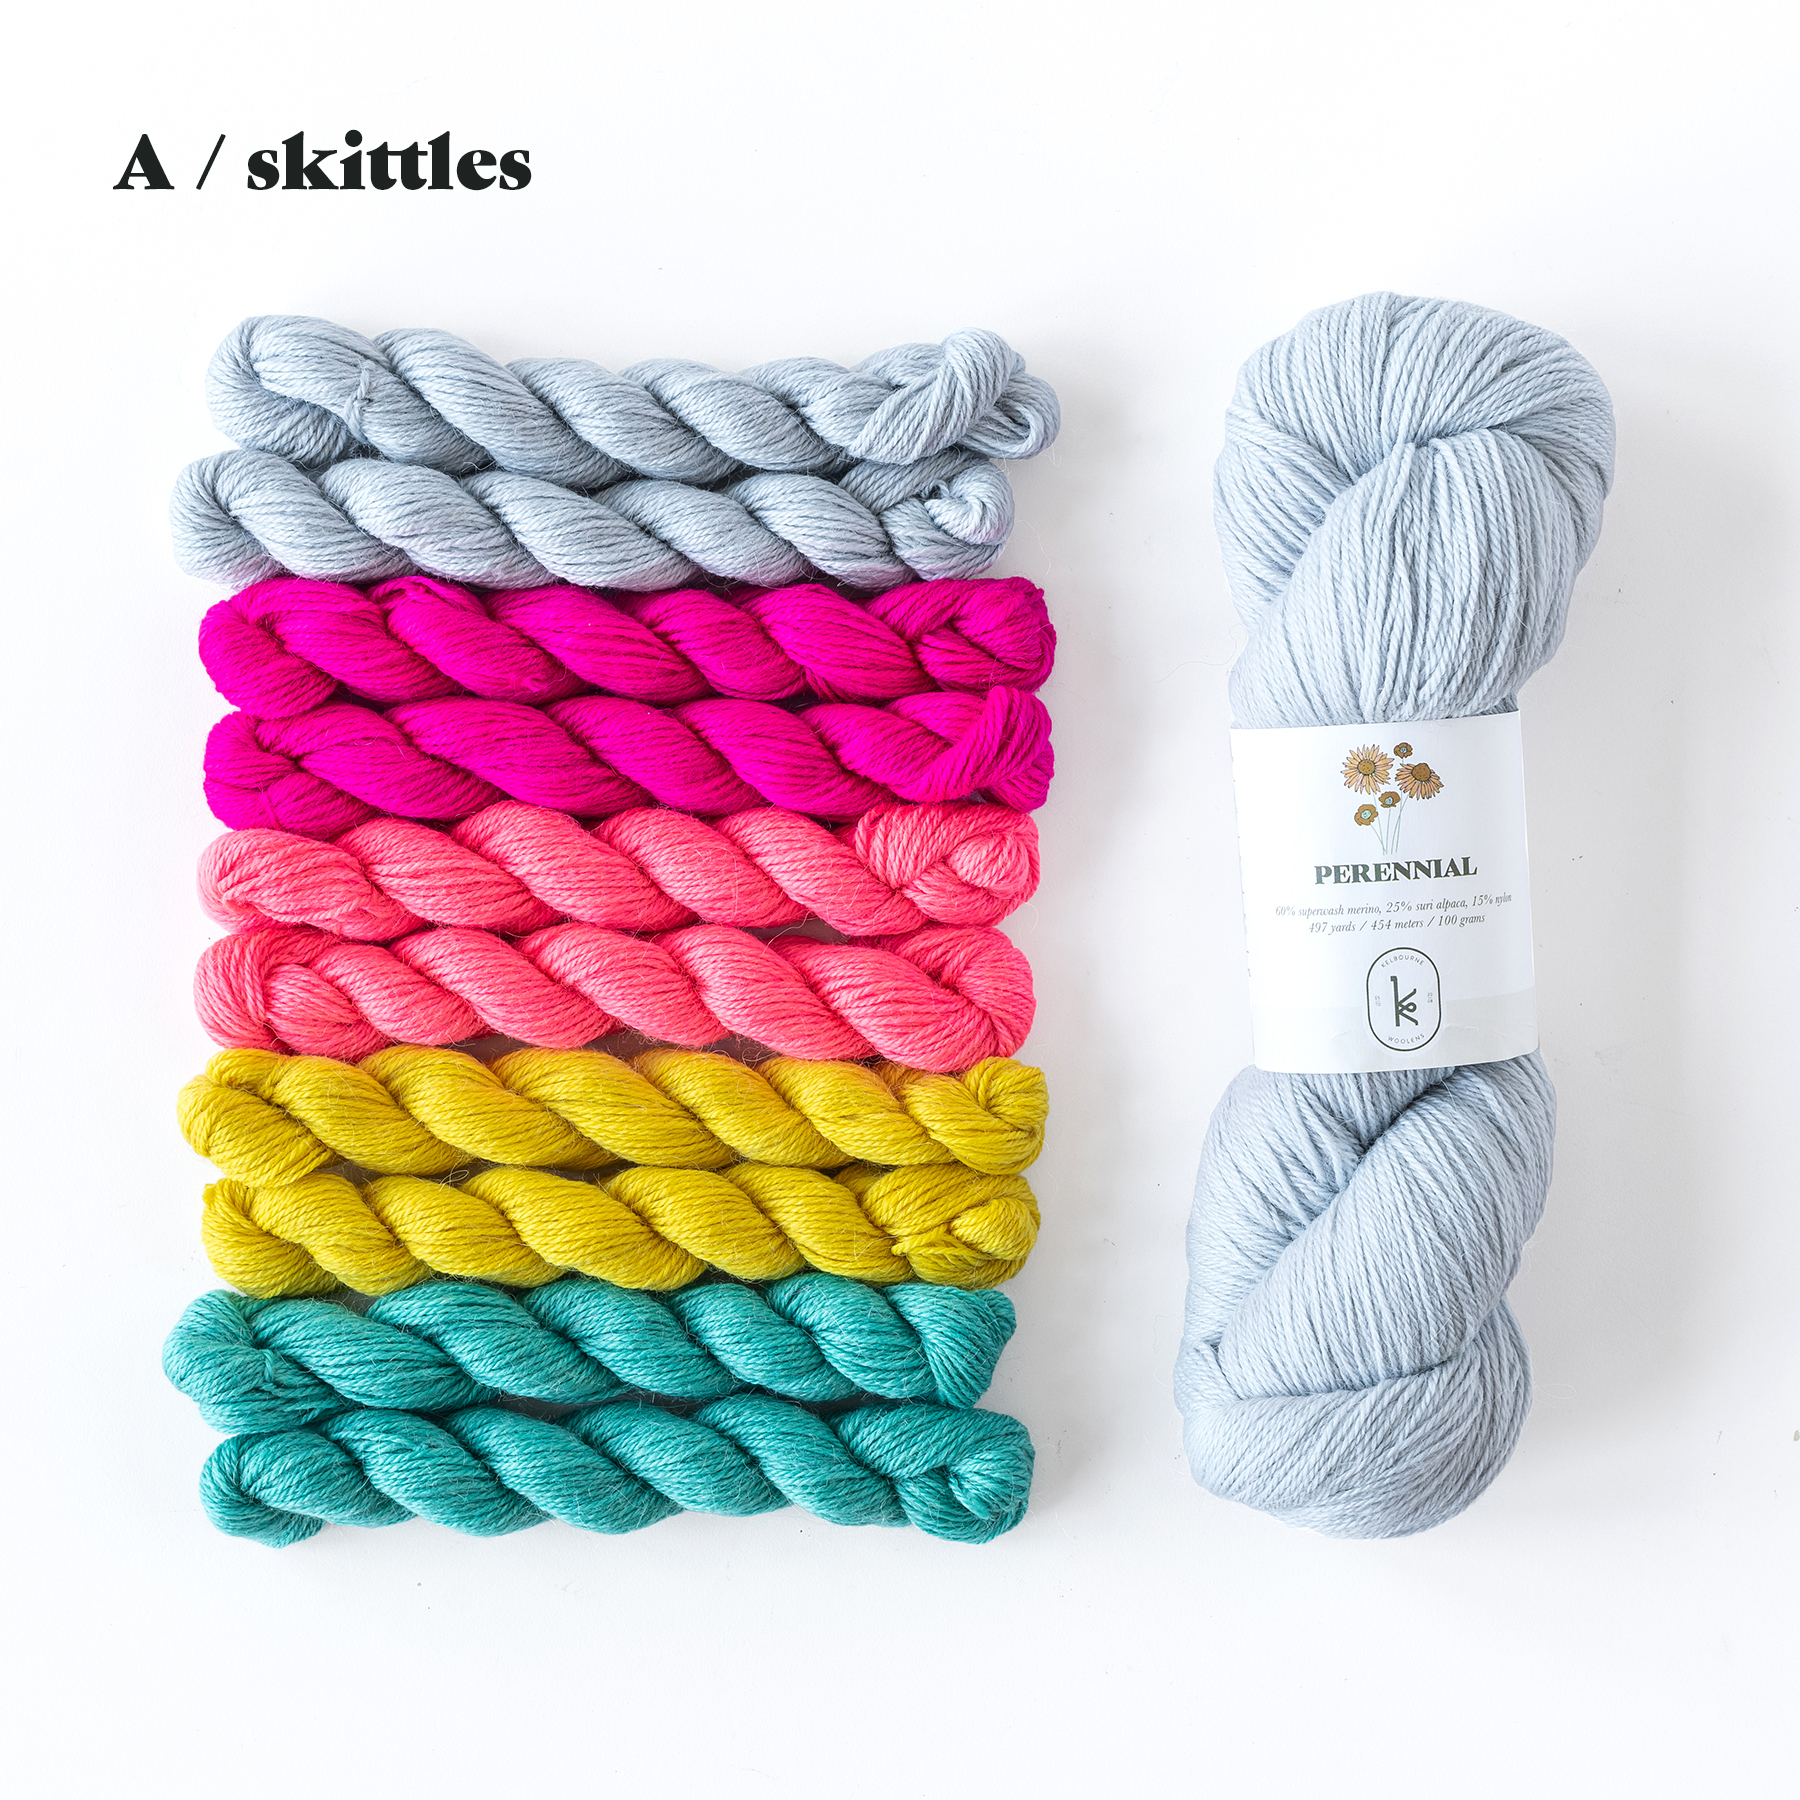 Bow in the Sky Kit a skittles.jpg